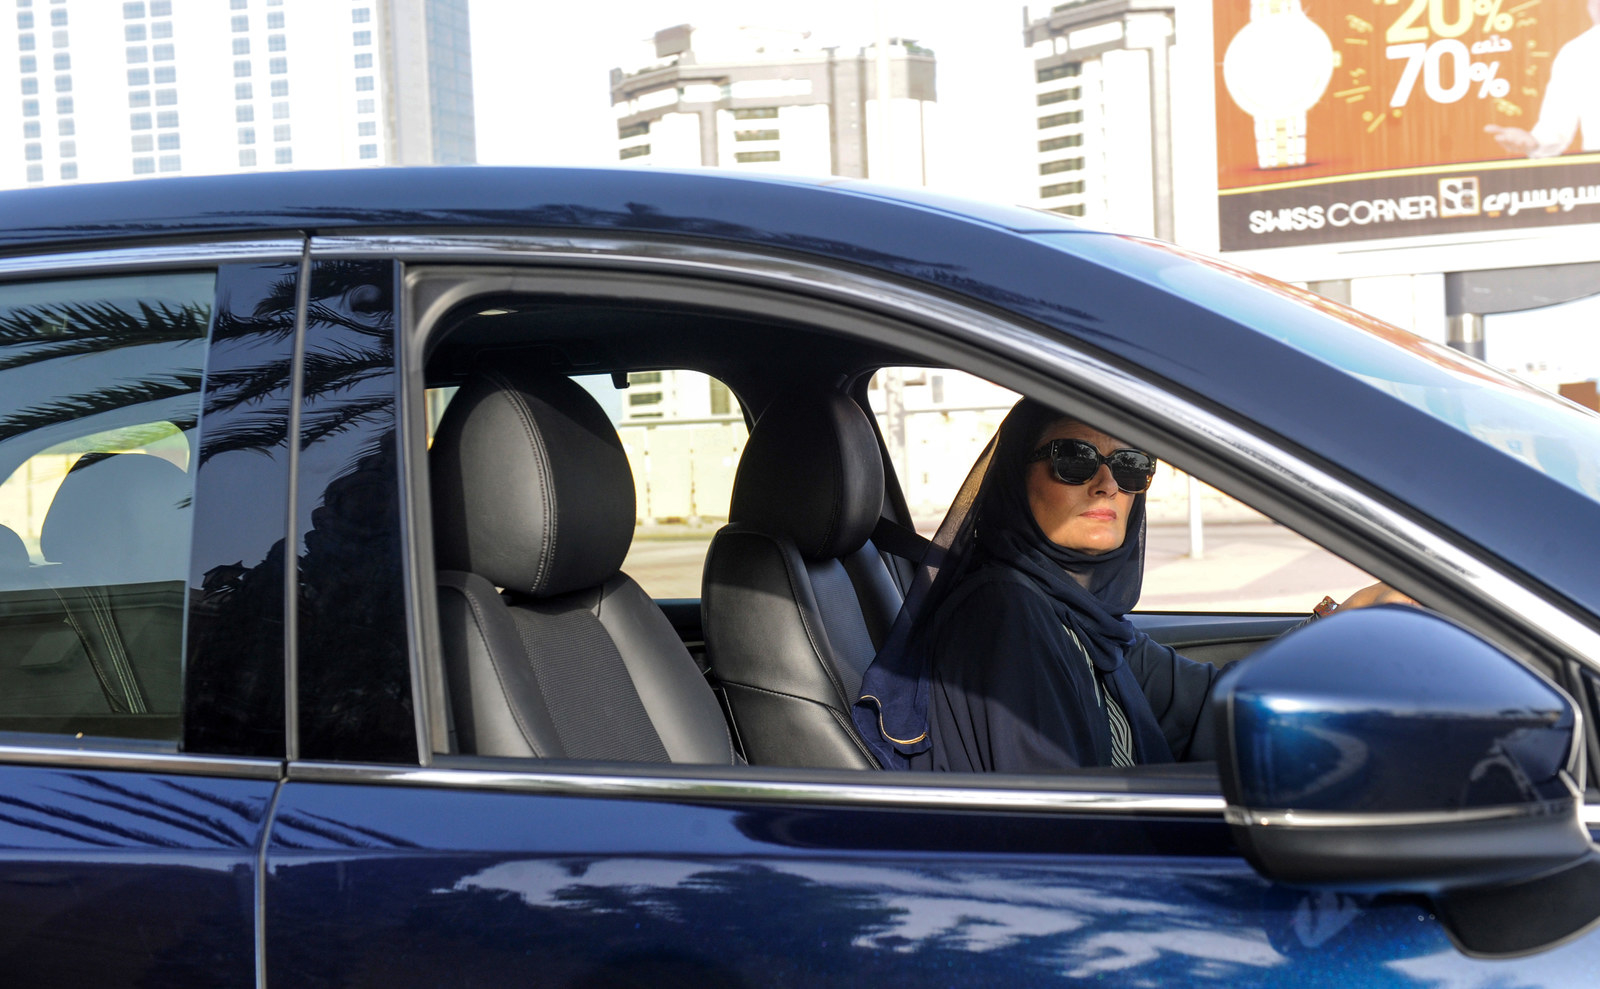 the issue of the lack of driving rights among women in saudi arabia After a prolonged debate over allowing women to drive cars in saudi arabia, finally the matter was put to rest on june 24 following a royal decree that was issued last year by king salman.